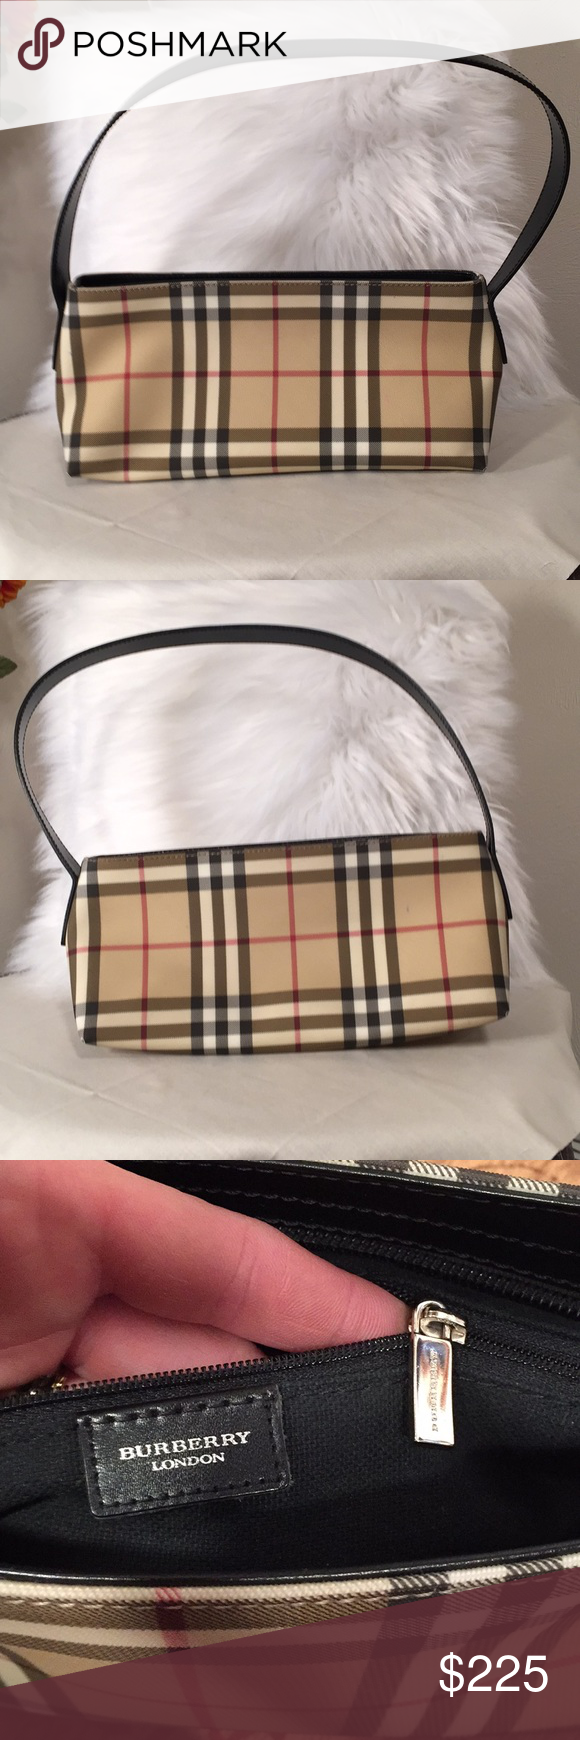 dbdad0cbdf68 Authentic Burberry purse! Beautiful genuine Burberry purse! Measures 12  inches wide at widest point and 5.5 inches high. It s 4 inches deep.